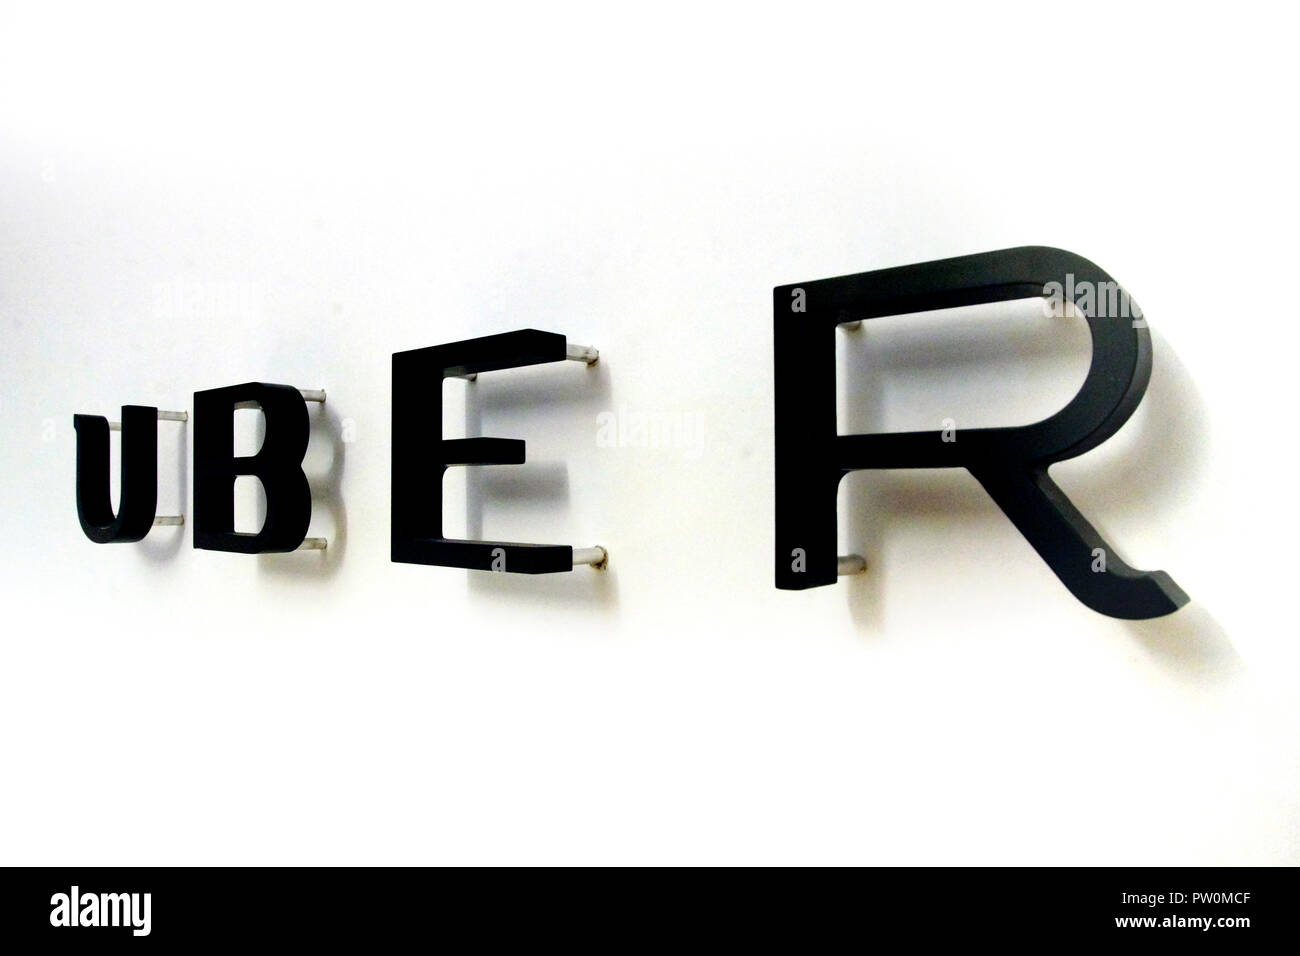 Montreal,Canada,20 May,2017.UBER sign in their Montreal offices. Credit:Mario Beauregard/Alamy Live News - Stock Image